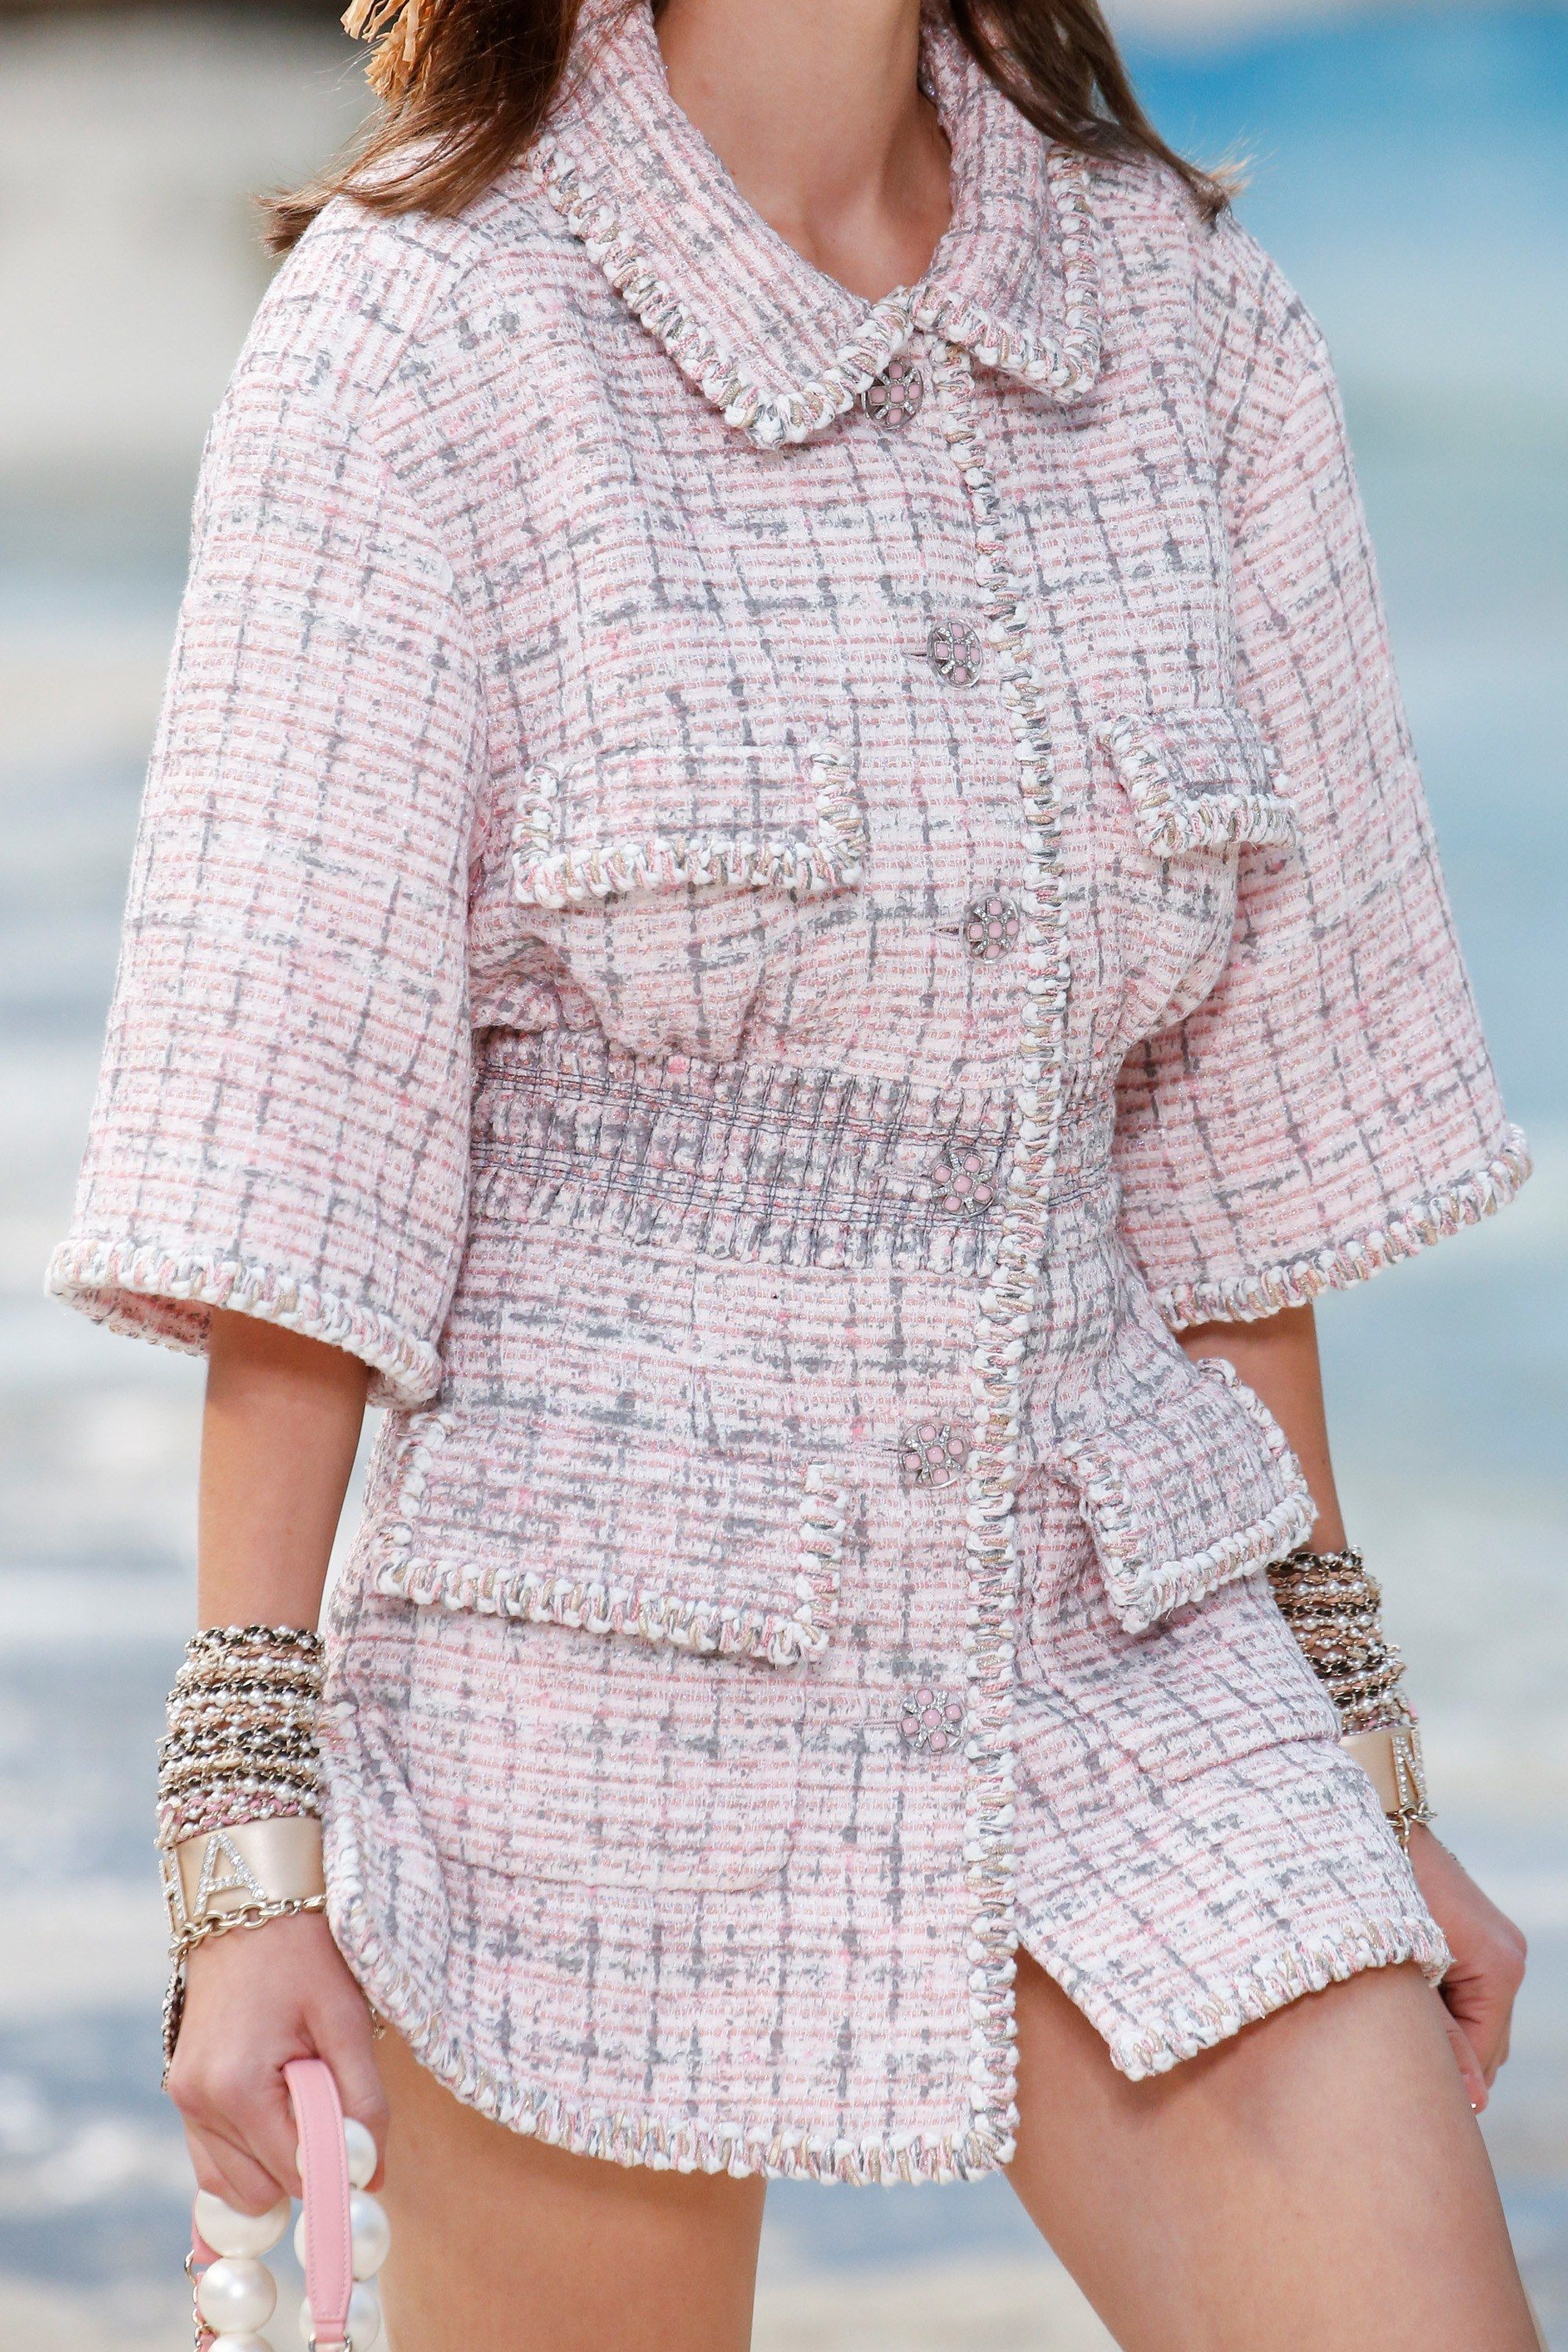 7ee2ccb04f2c Chanel Spring 2019 Ready-to-Wear Fashion Show in 2019 | Women's ...